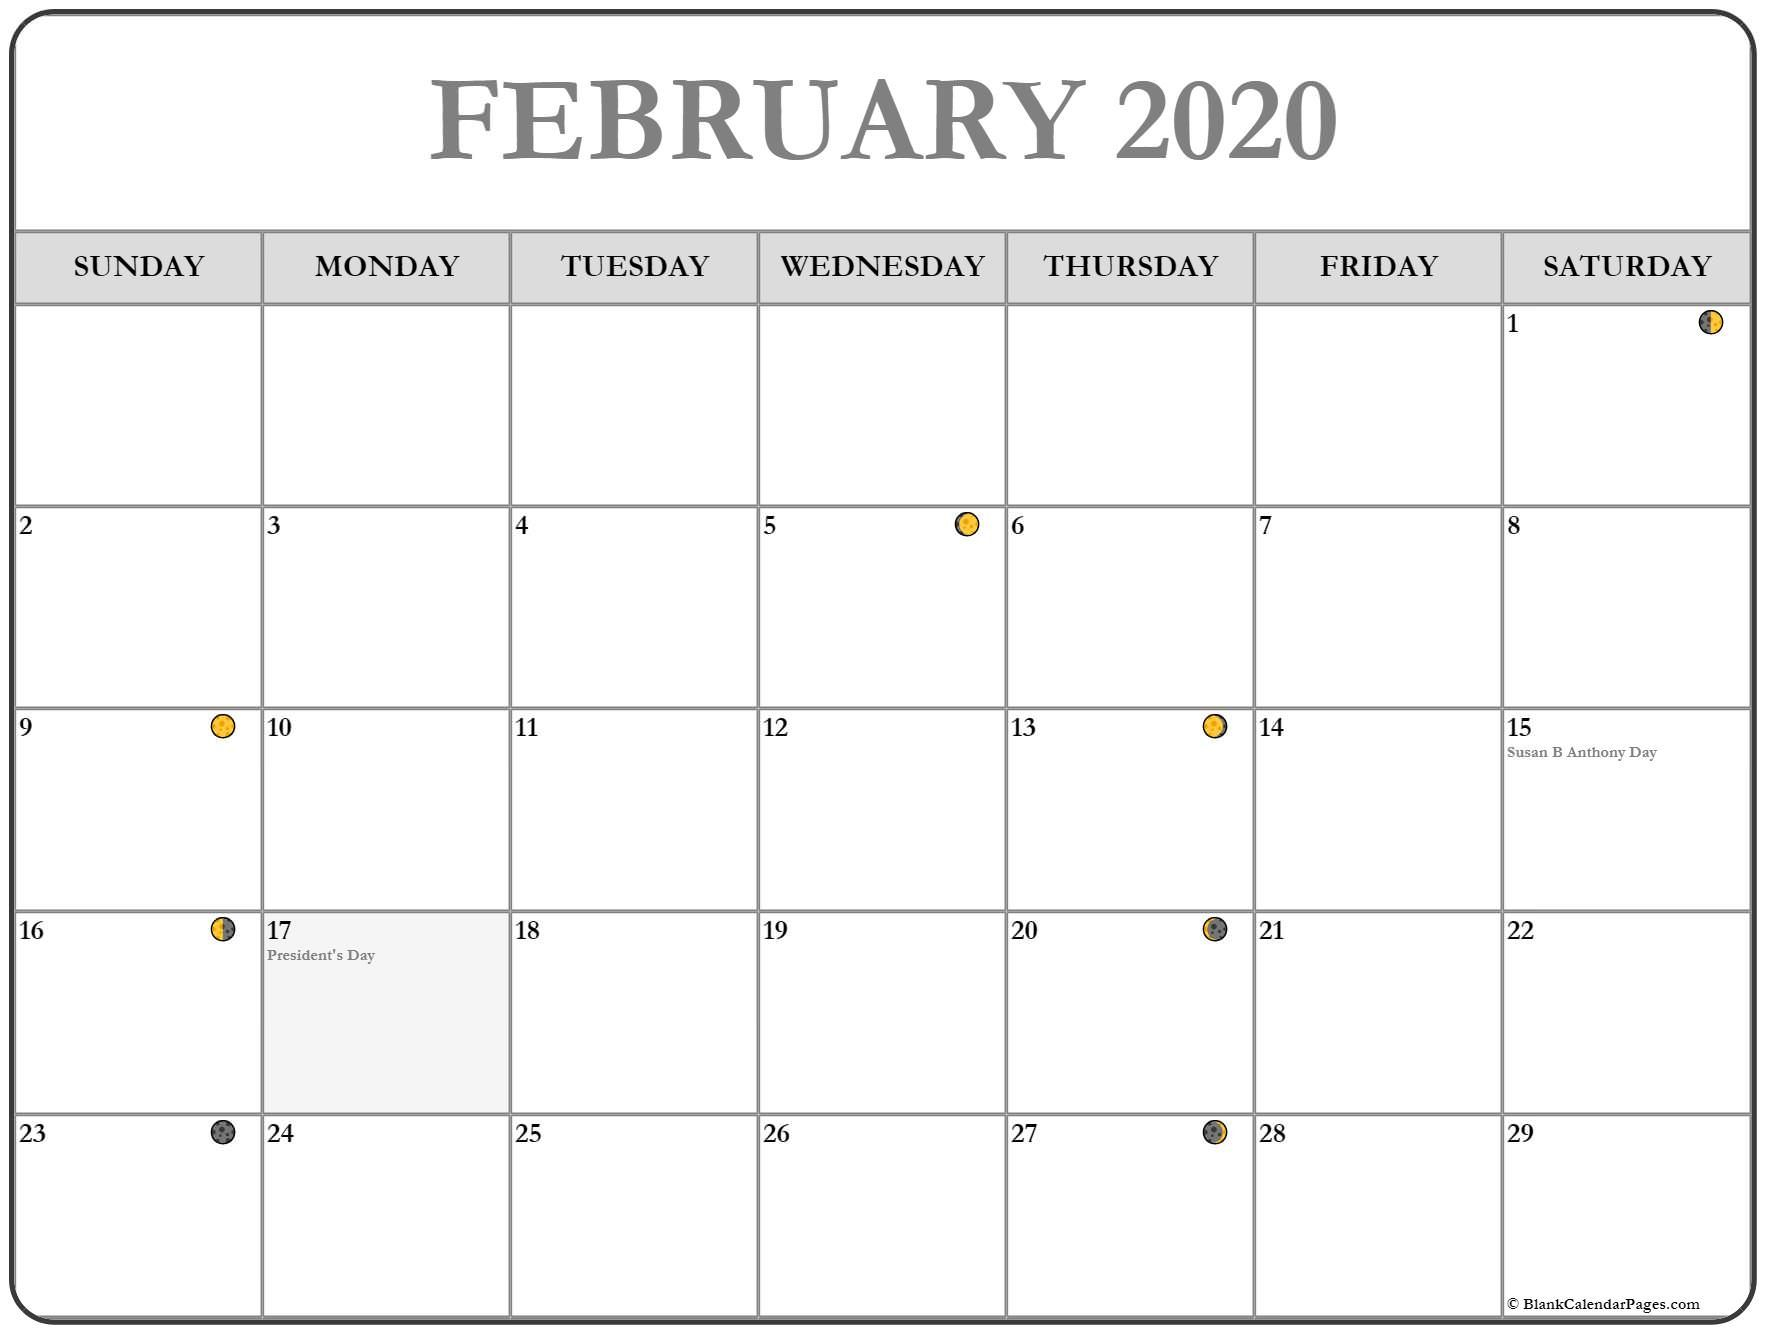 February 2020 Moon Phases Calendar In 2020 | Moon Phase